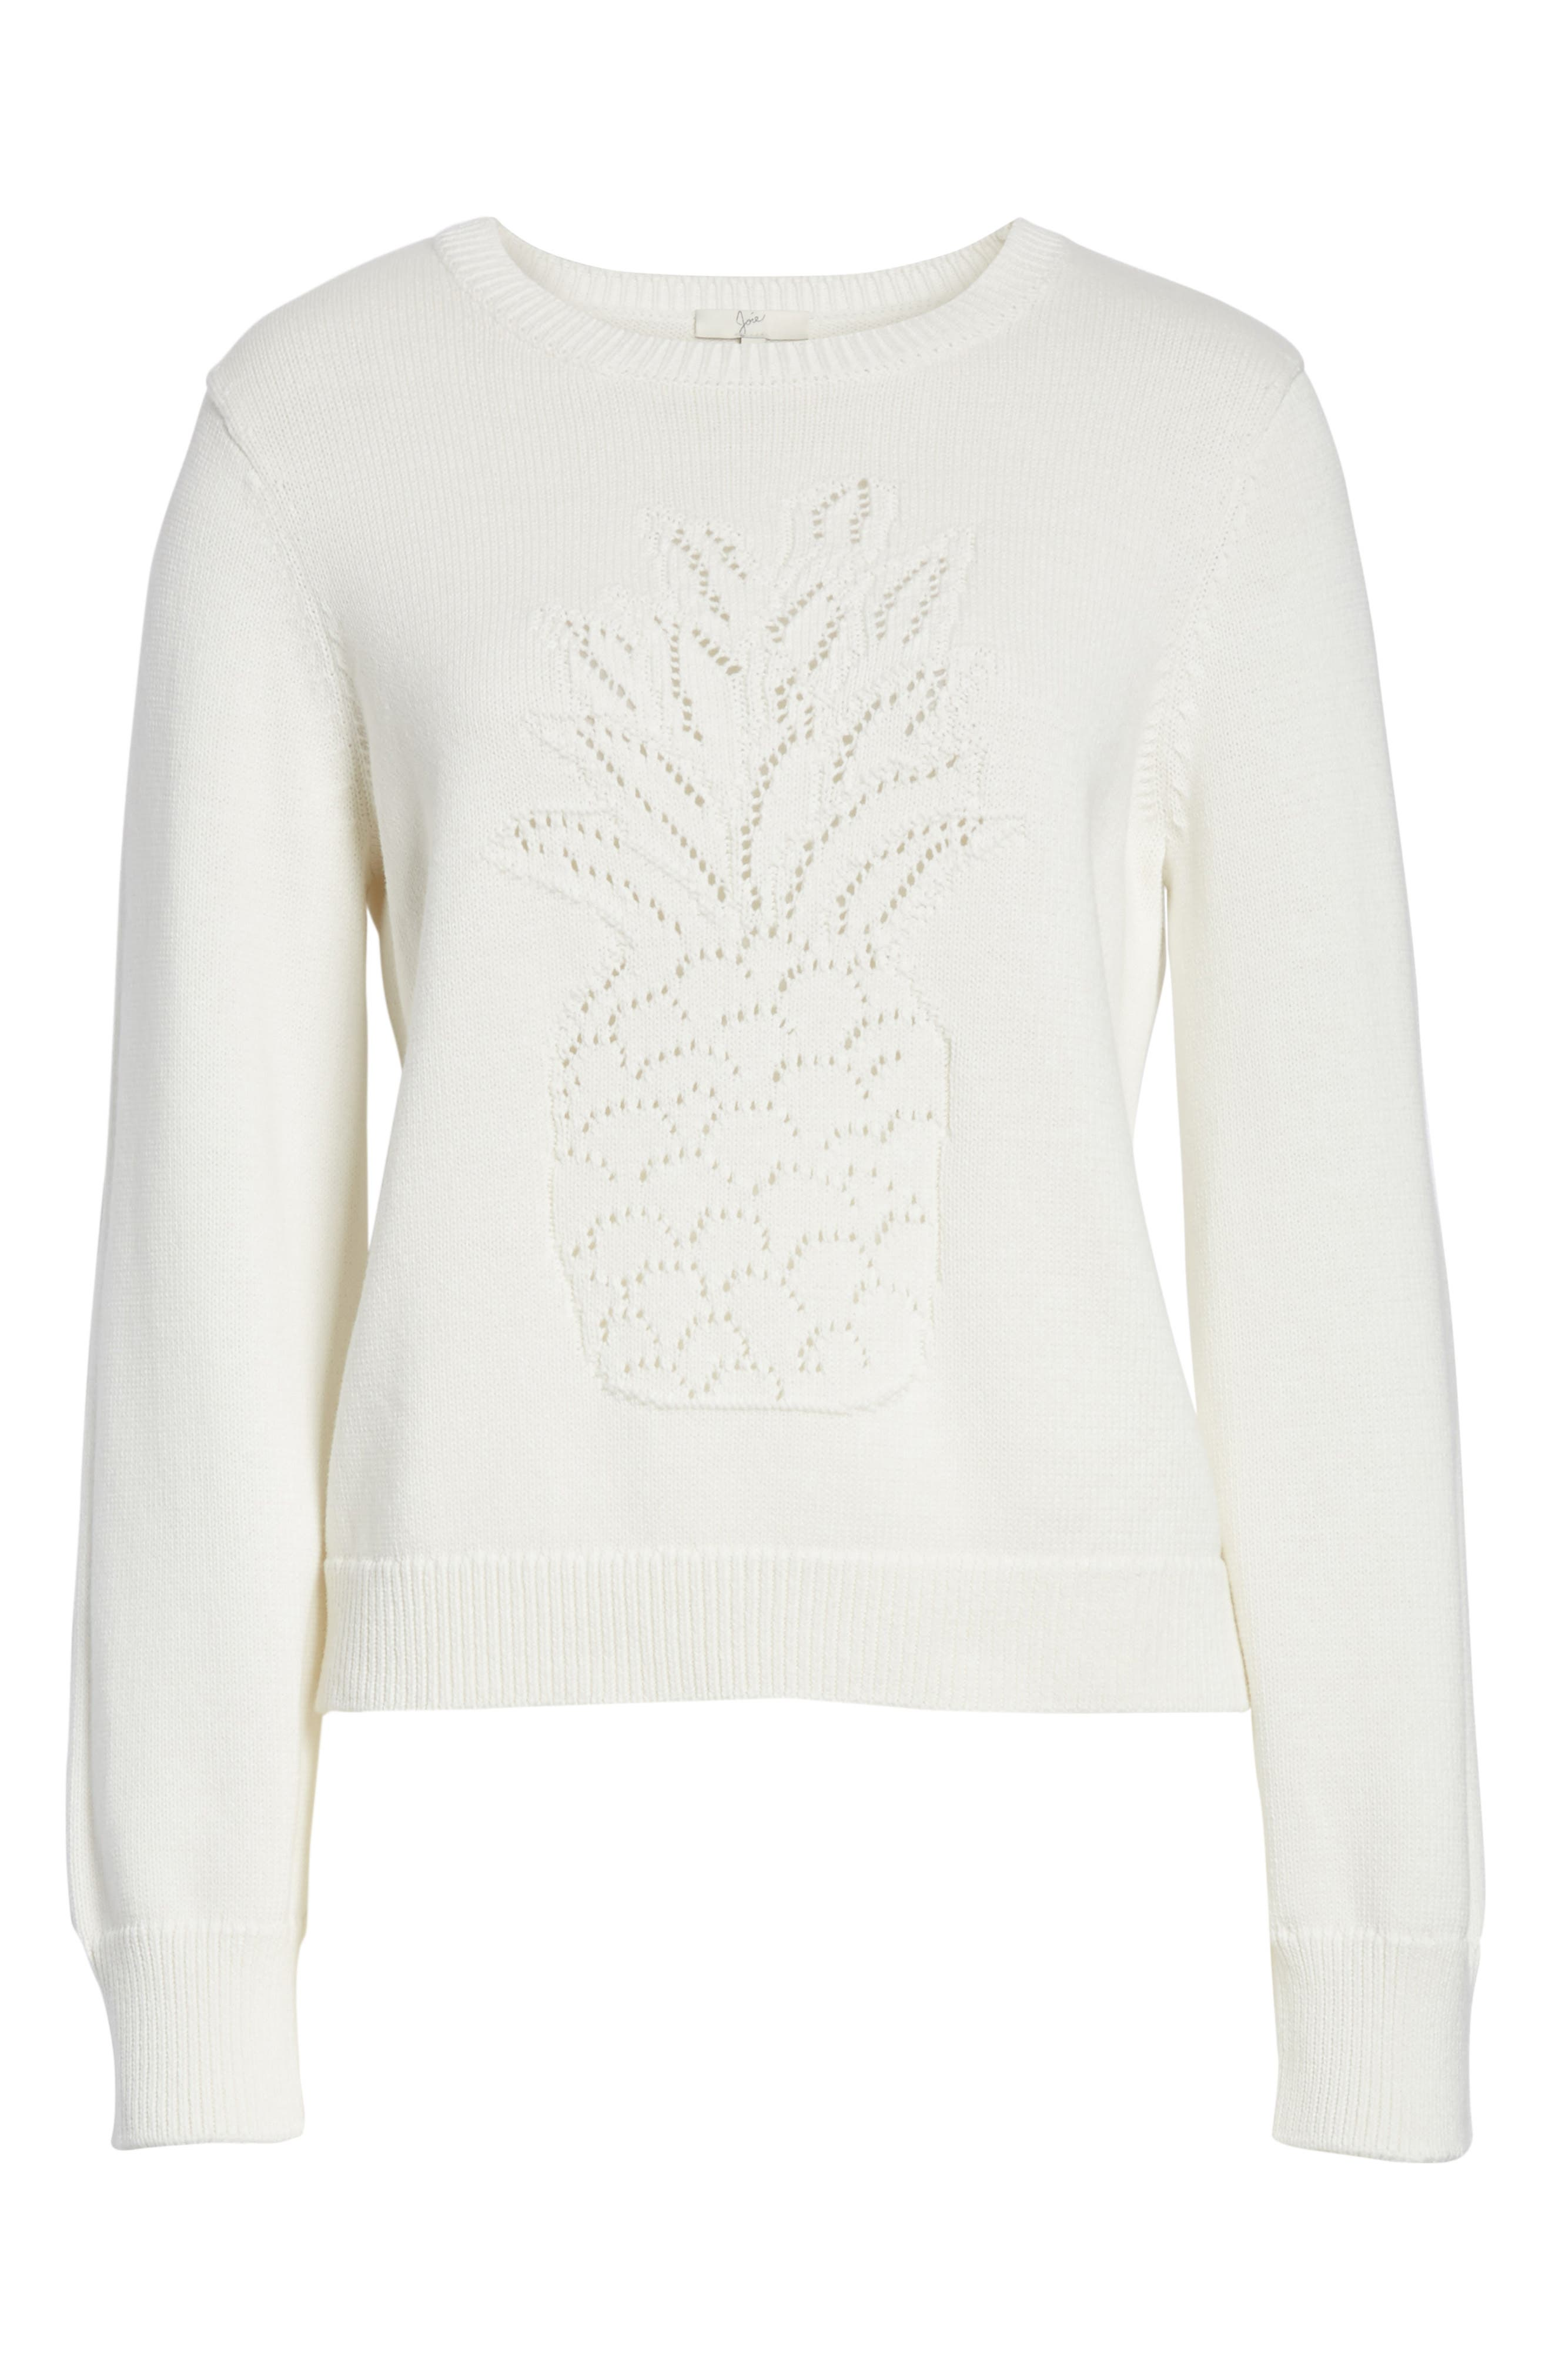 Barin Pineapple Cotton Sweater,                             Alternate thumbnail 6, color,                             120